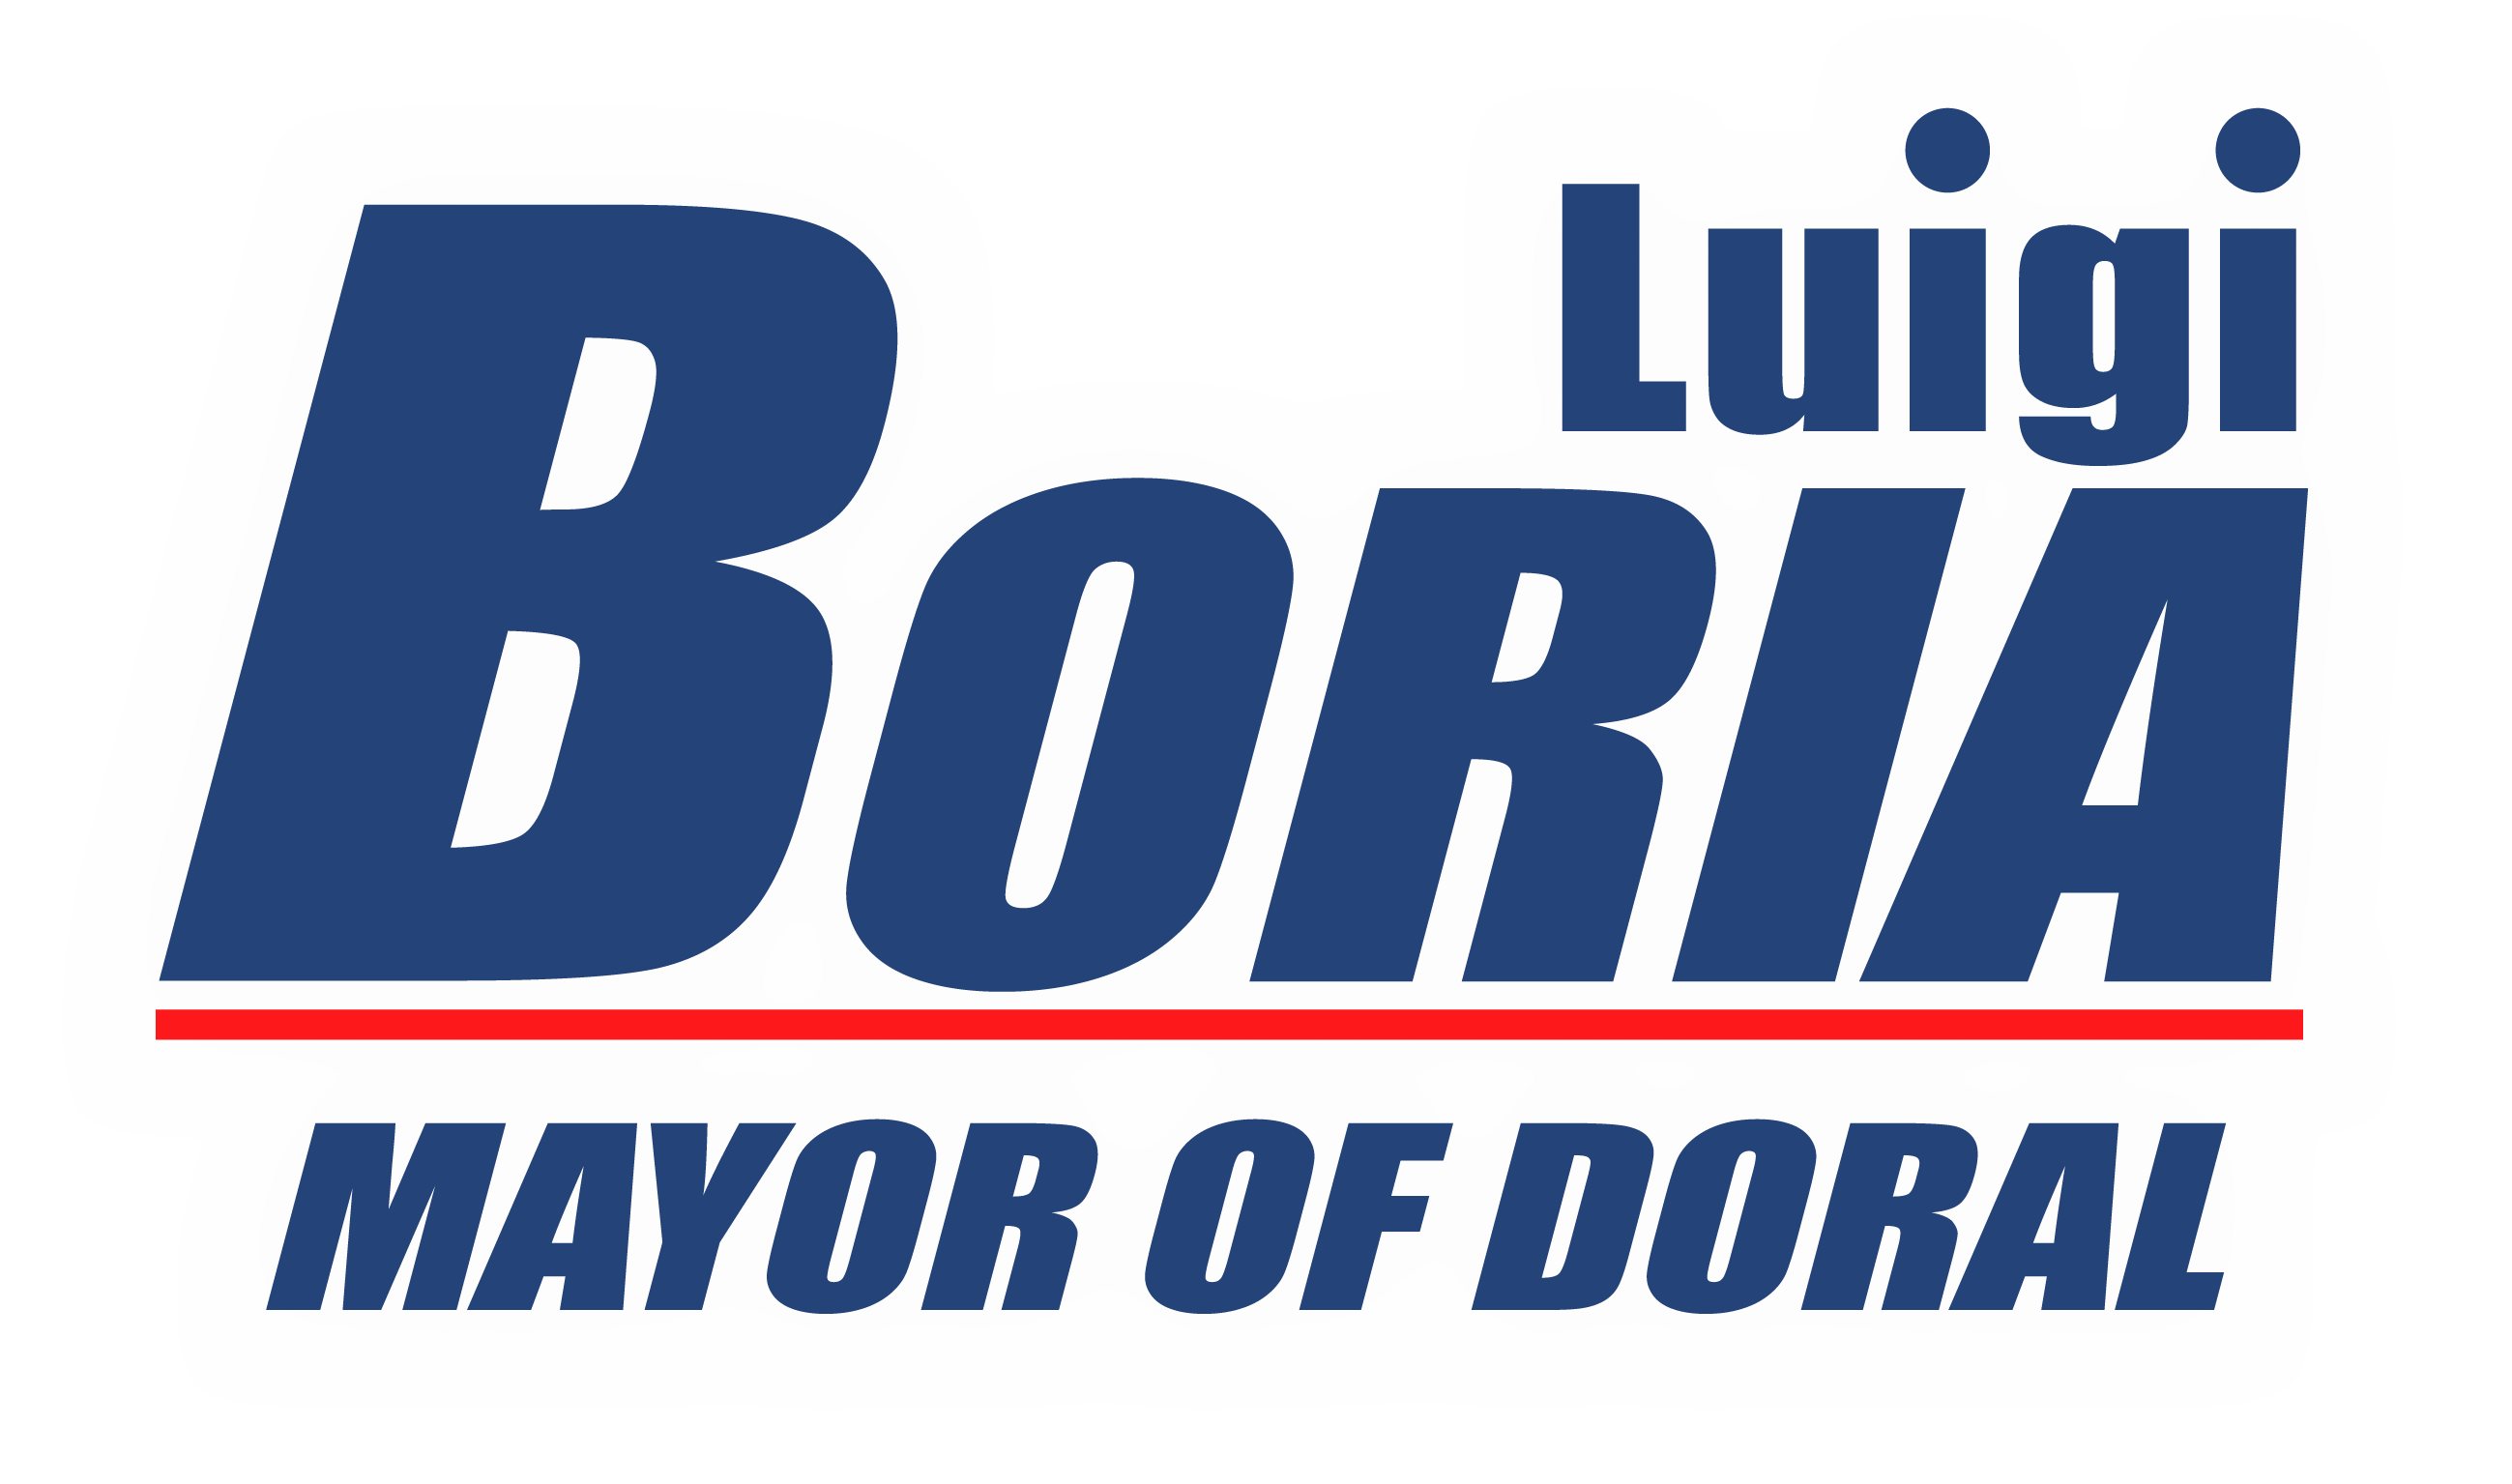 Luigi Boria Mayor of Doral Logo